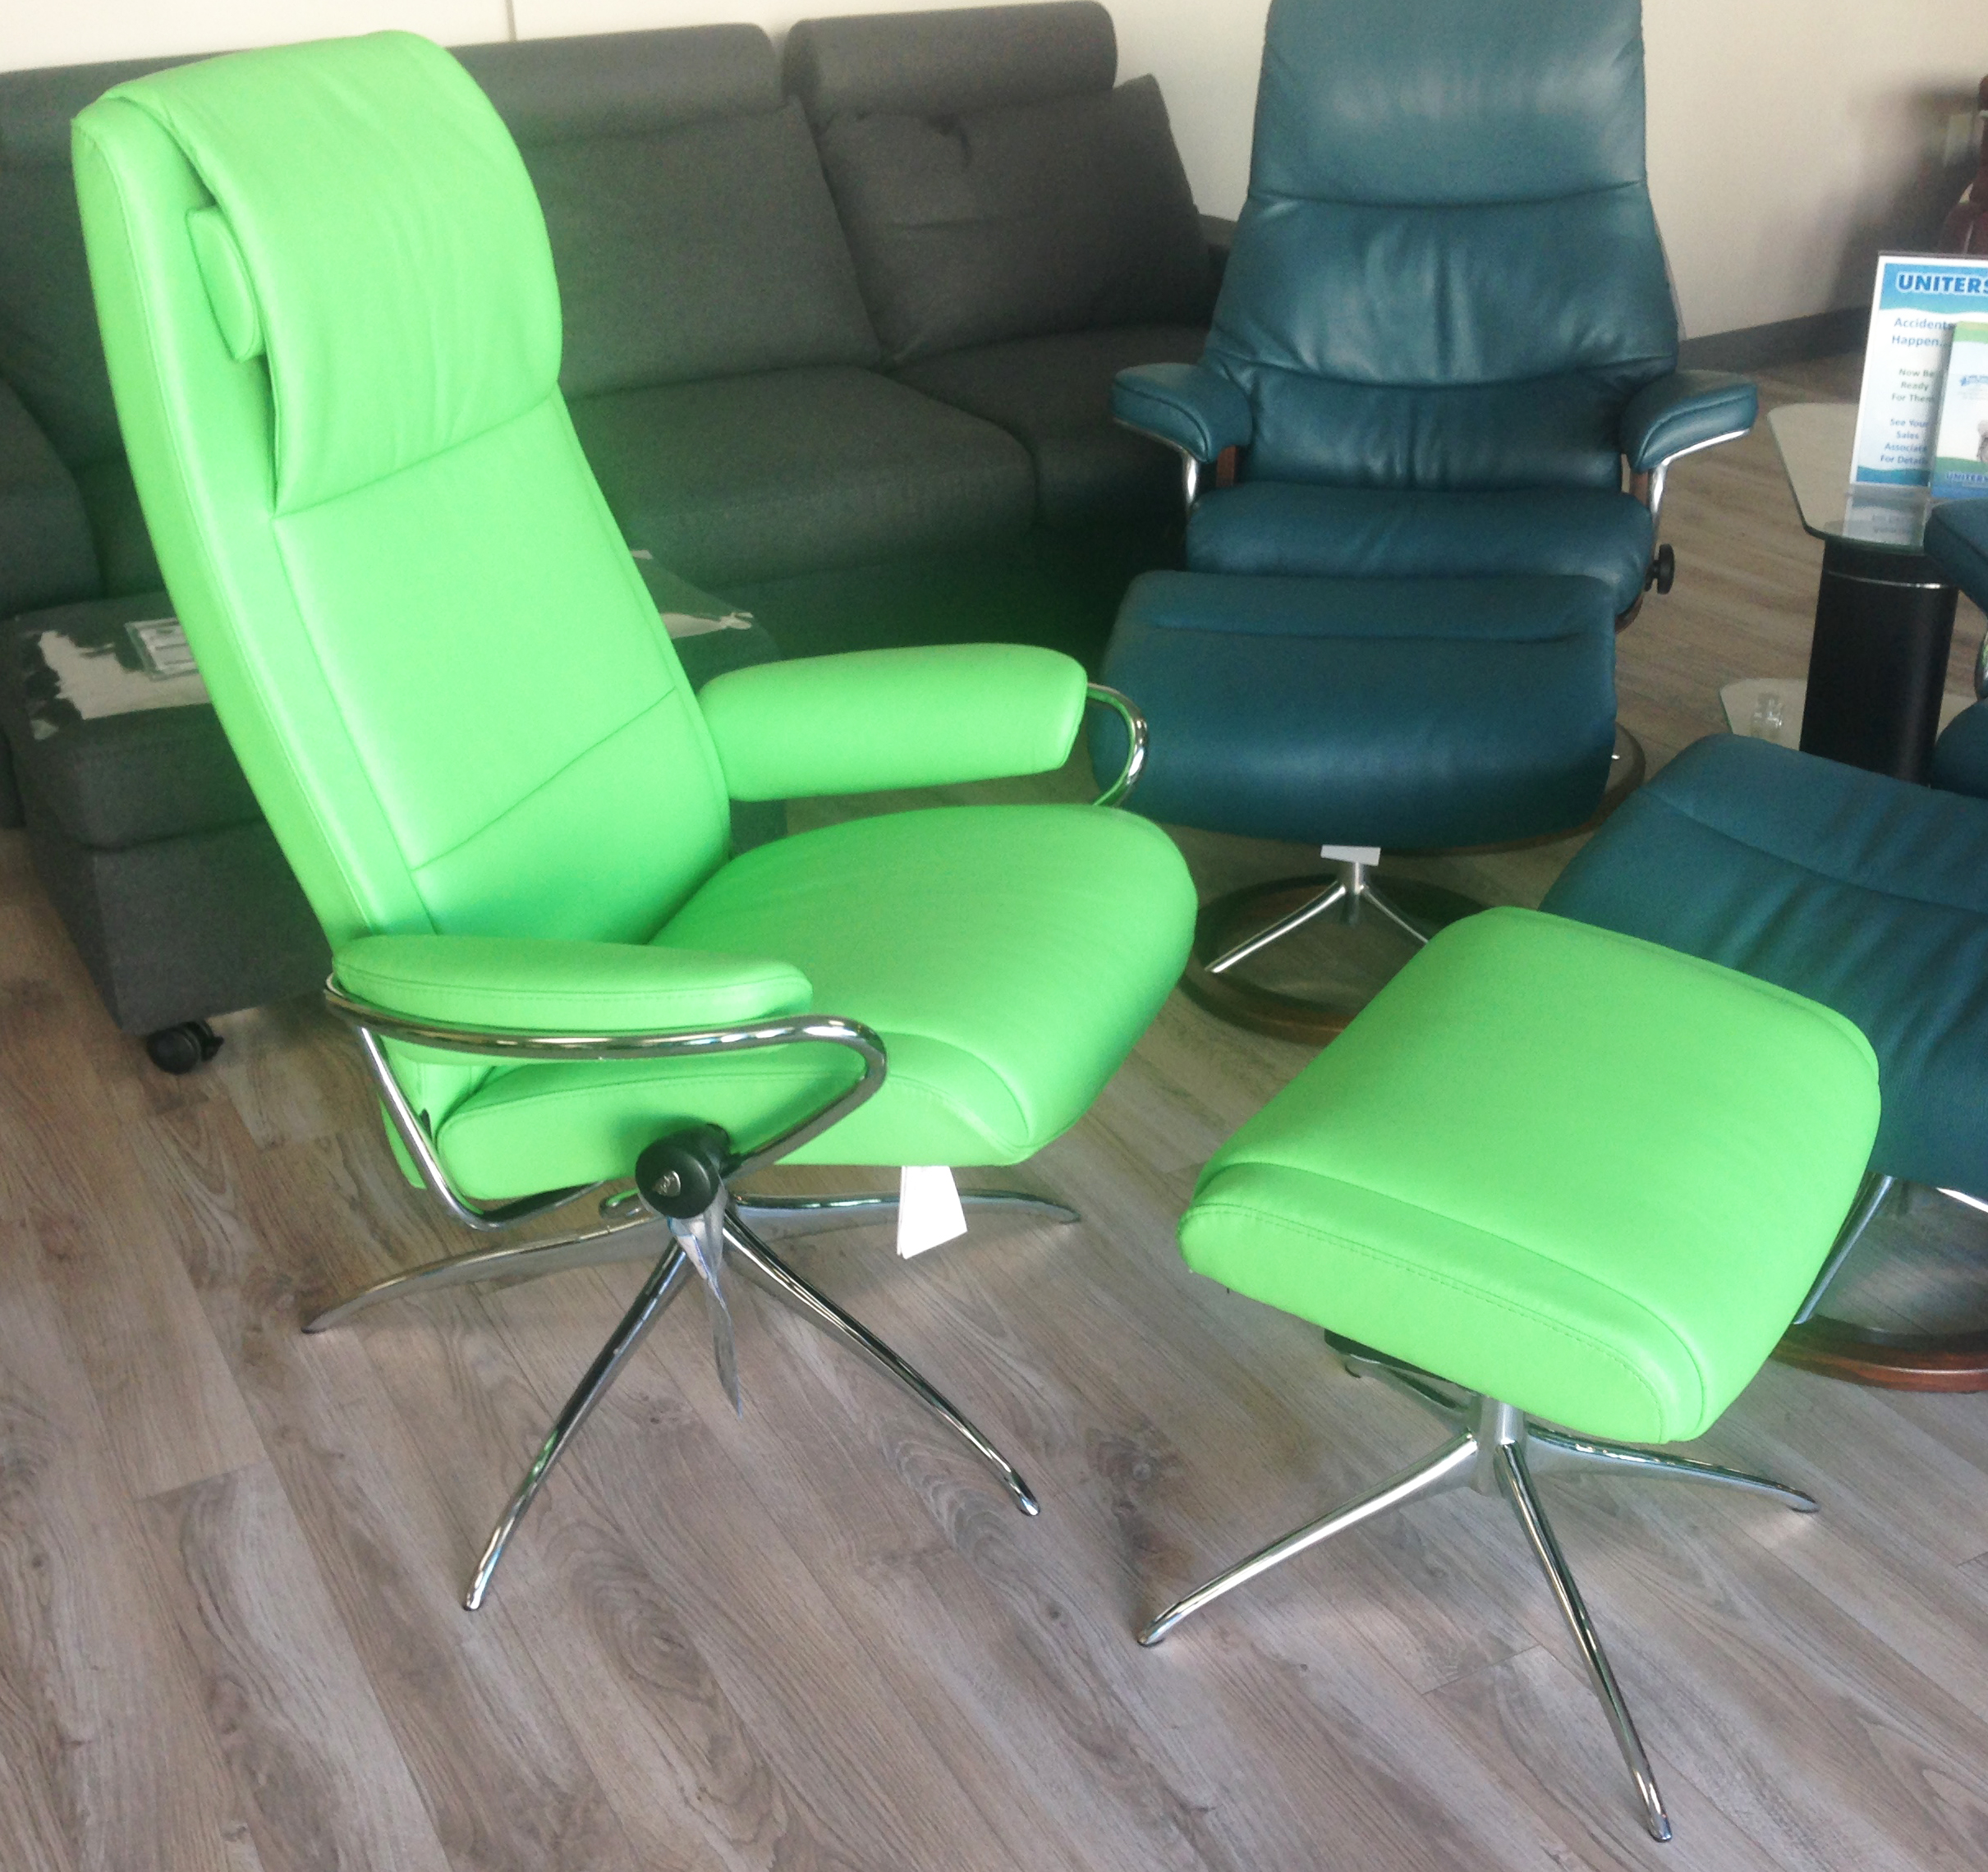 Fabulous Stressless Sofa Loveseat Recliner Chair And Ottoman By Ekornes Ocoug Best Dining Table And Chair Ideas Images Ocougorg